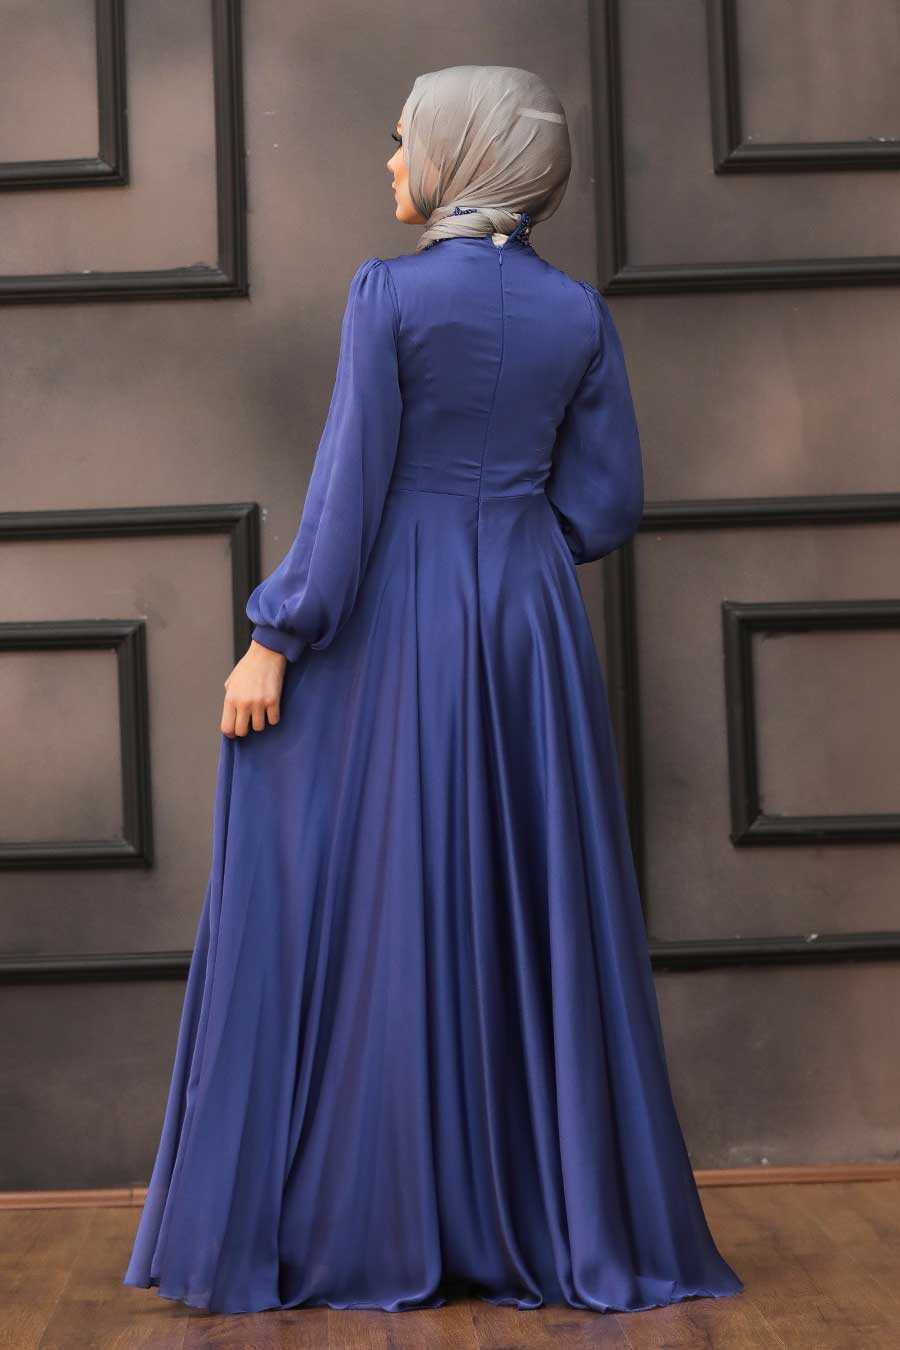 İndigo Blue Hijab Evening Dress 22150IM